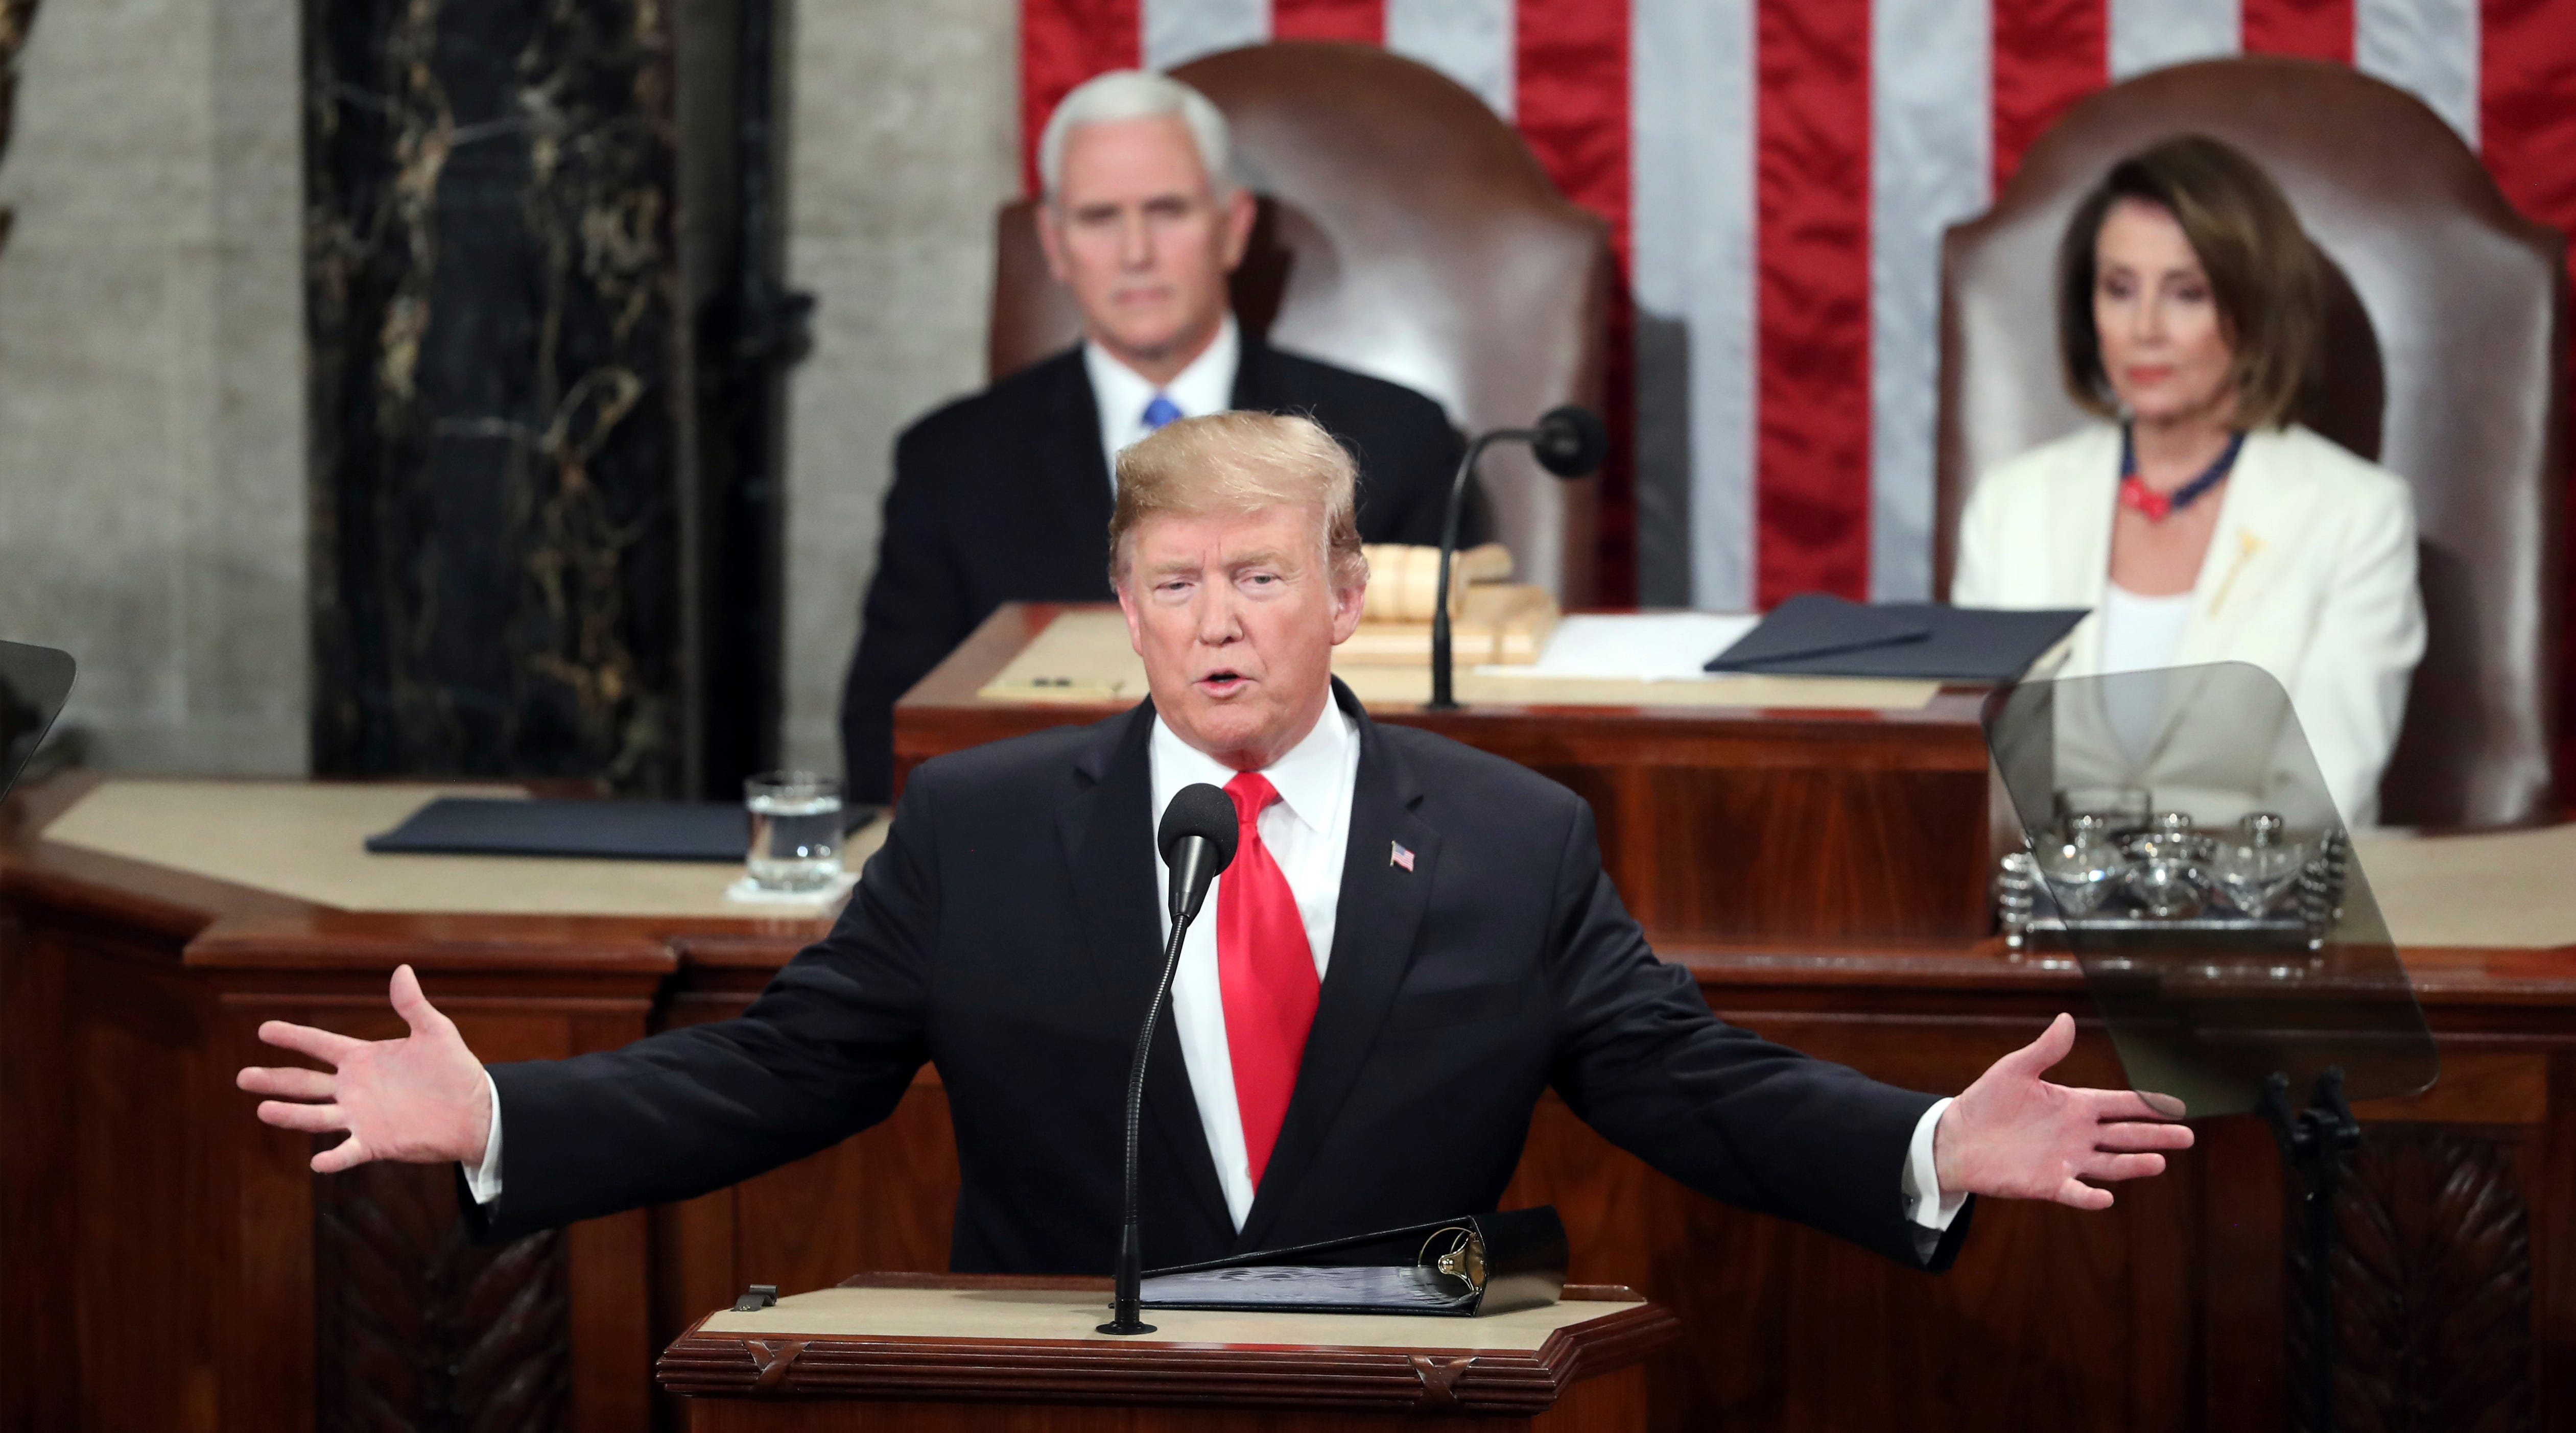 President Donald Trump delivers his State of the Union address to a joint session of Congress on Capitol Hill in Washington, as Vice President Mike Pence and Speaker of the House Nancy Pelosi, D-Calif., watch, Tuesday, Feb. 5, 2019.